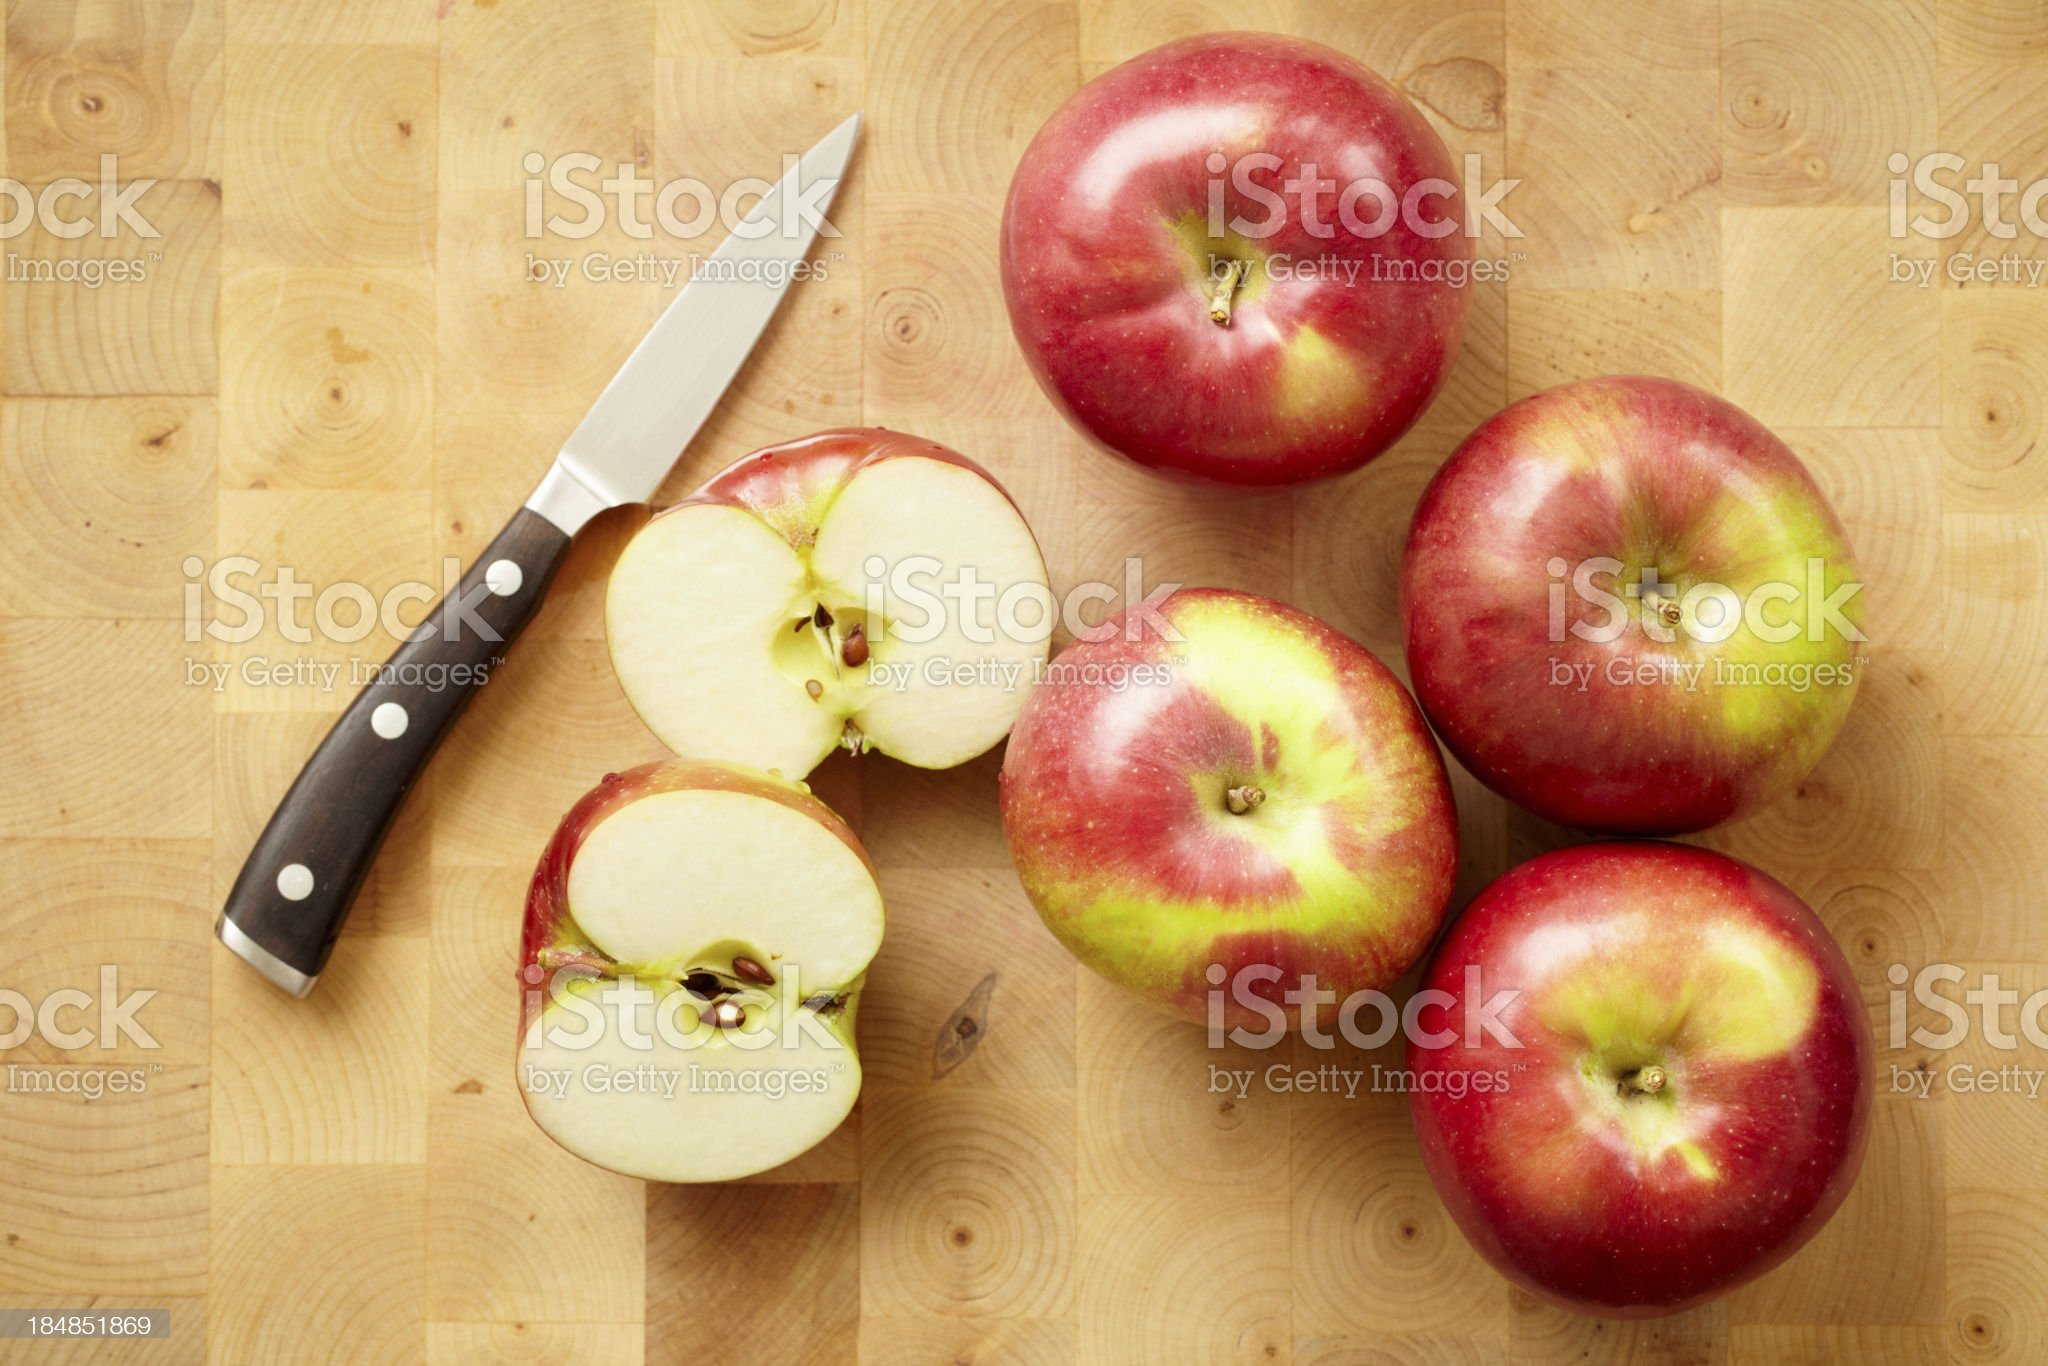 Slicing apples royalty-free stock photo